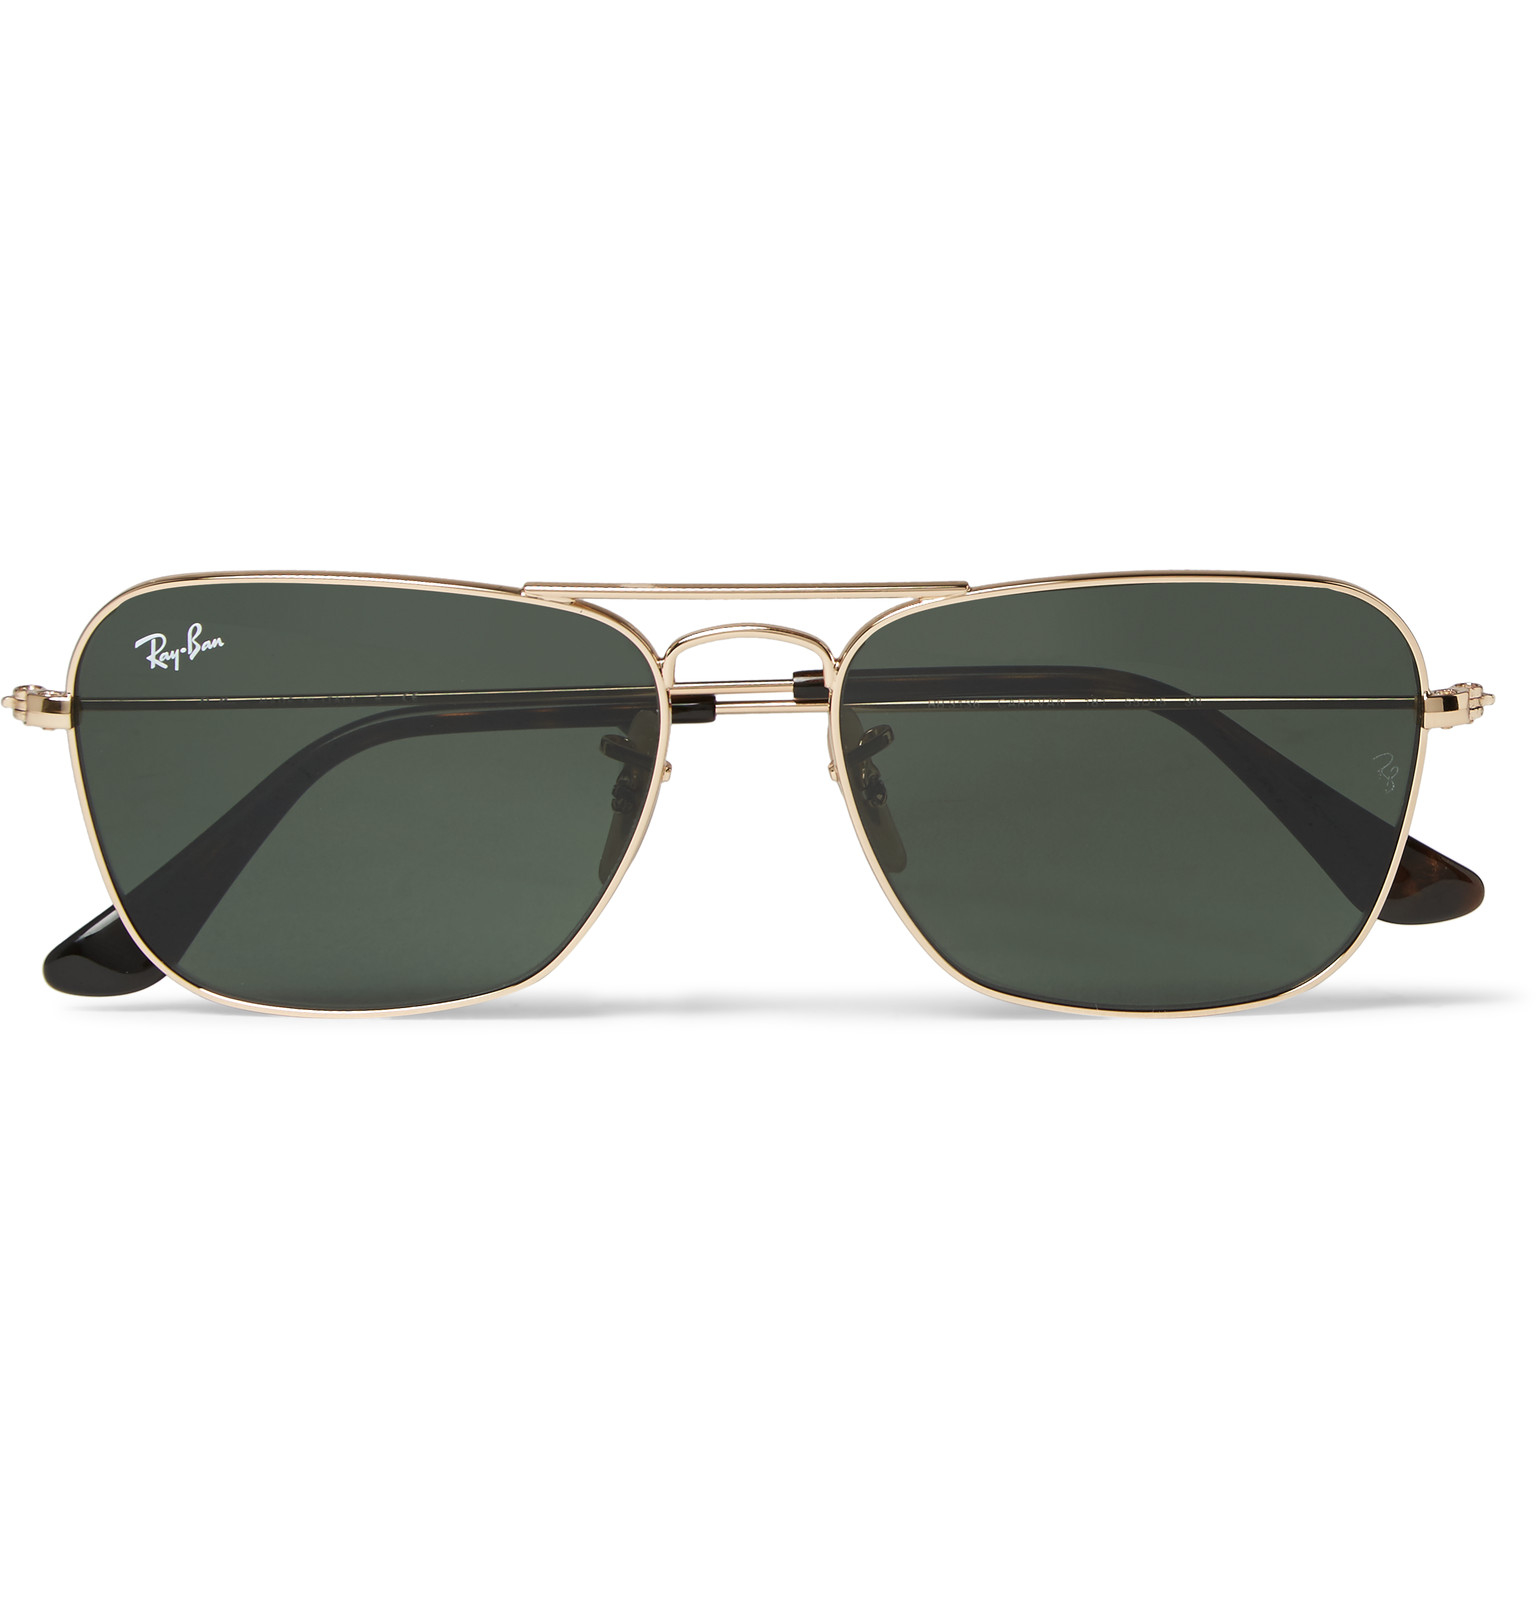 16bfc28046 ... inexpensive lyst ray ban square frame gold tone sunglasses in metallic  for men 9205f cad89